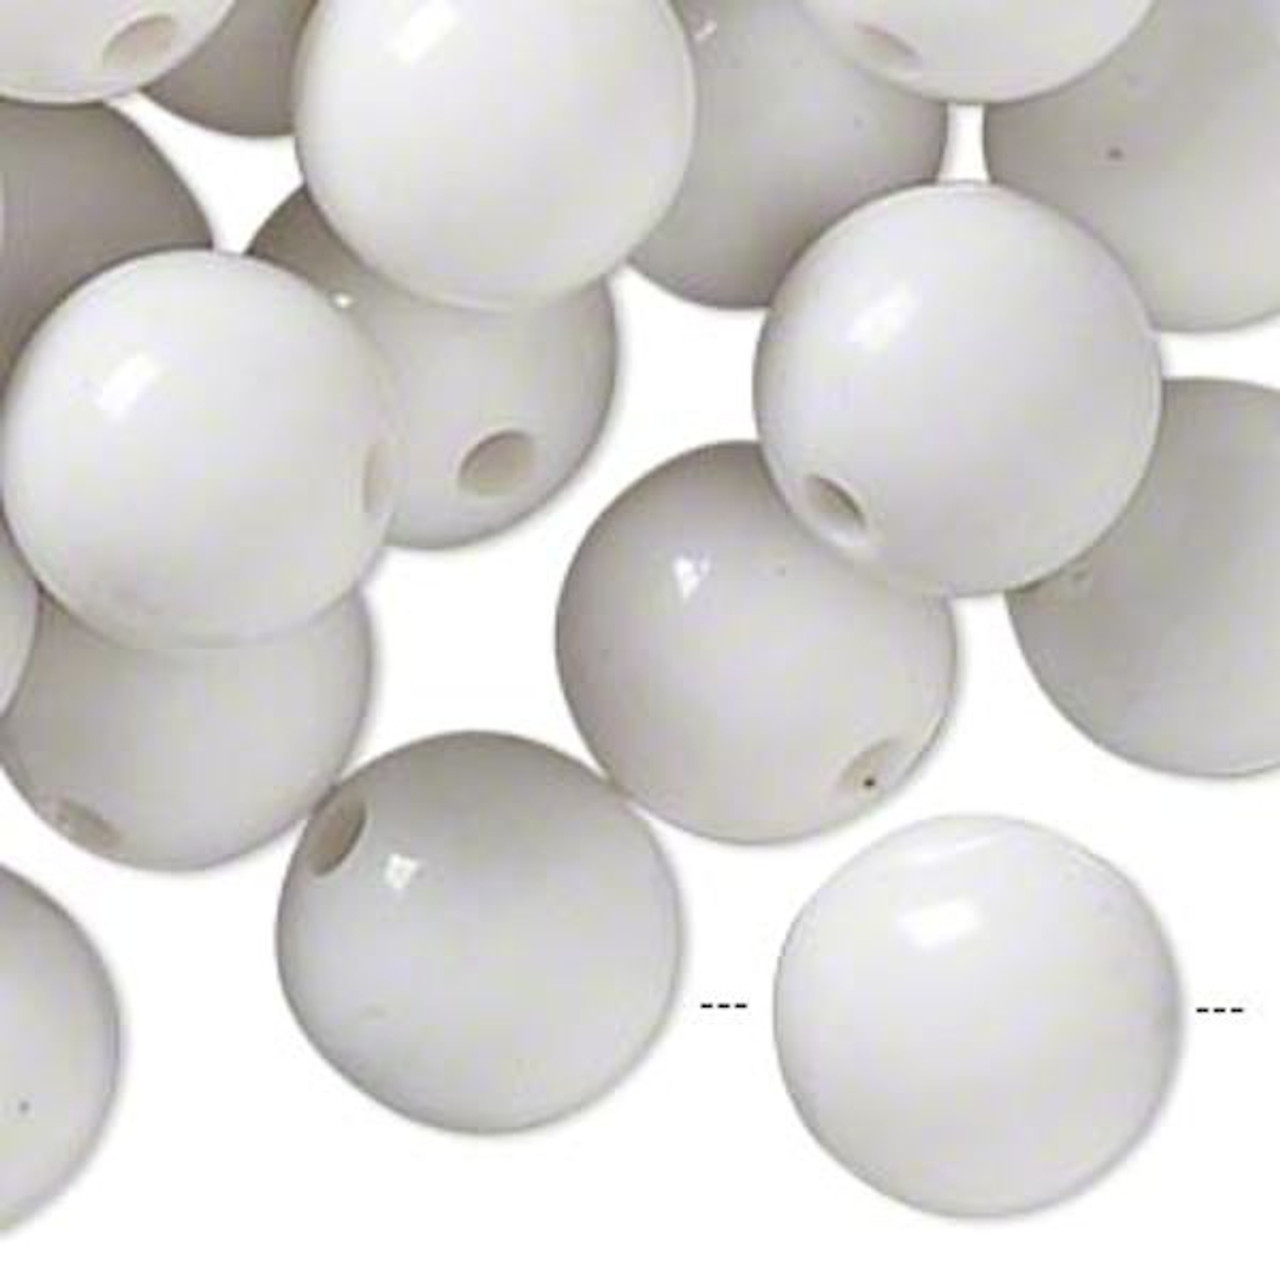 1//4lb Opaque Marbled White /& Clear Resin 19-21mm Round Beads *